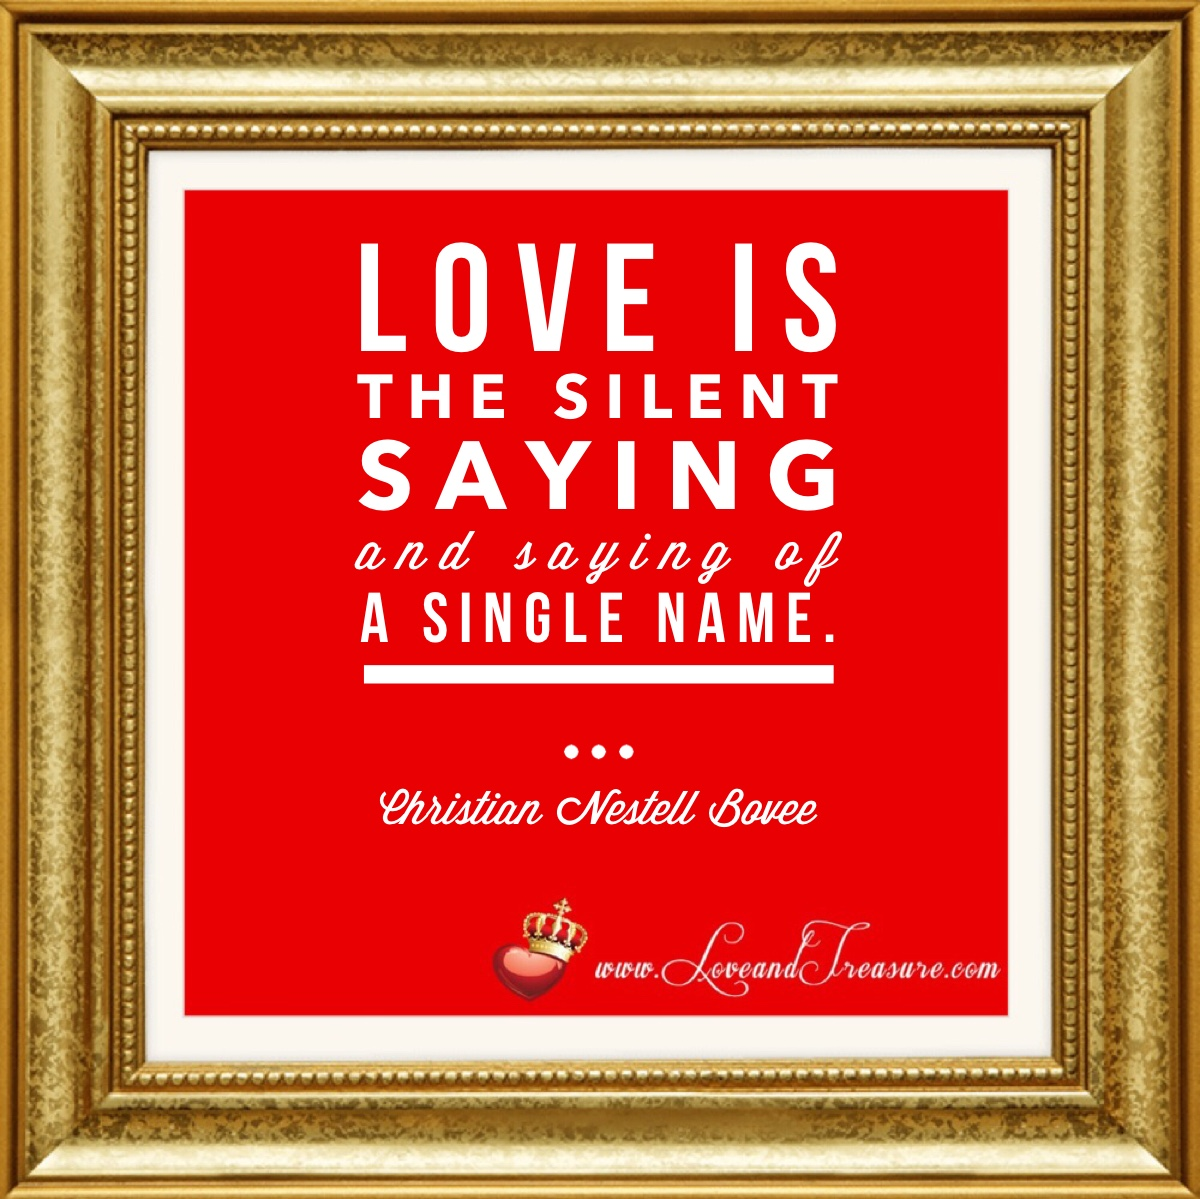 love is the silent saying and saying of a single name, Christian Nestell Bovee, www.loveandtreasure.com, love and treasure, what is love?